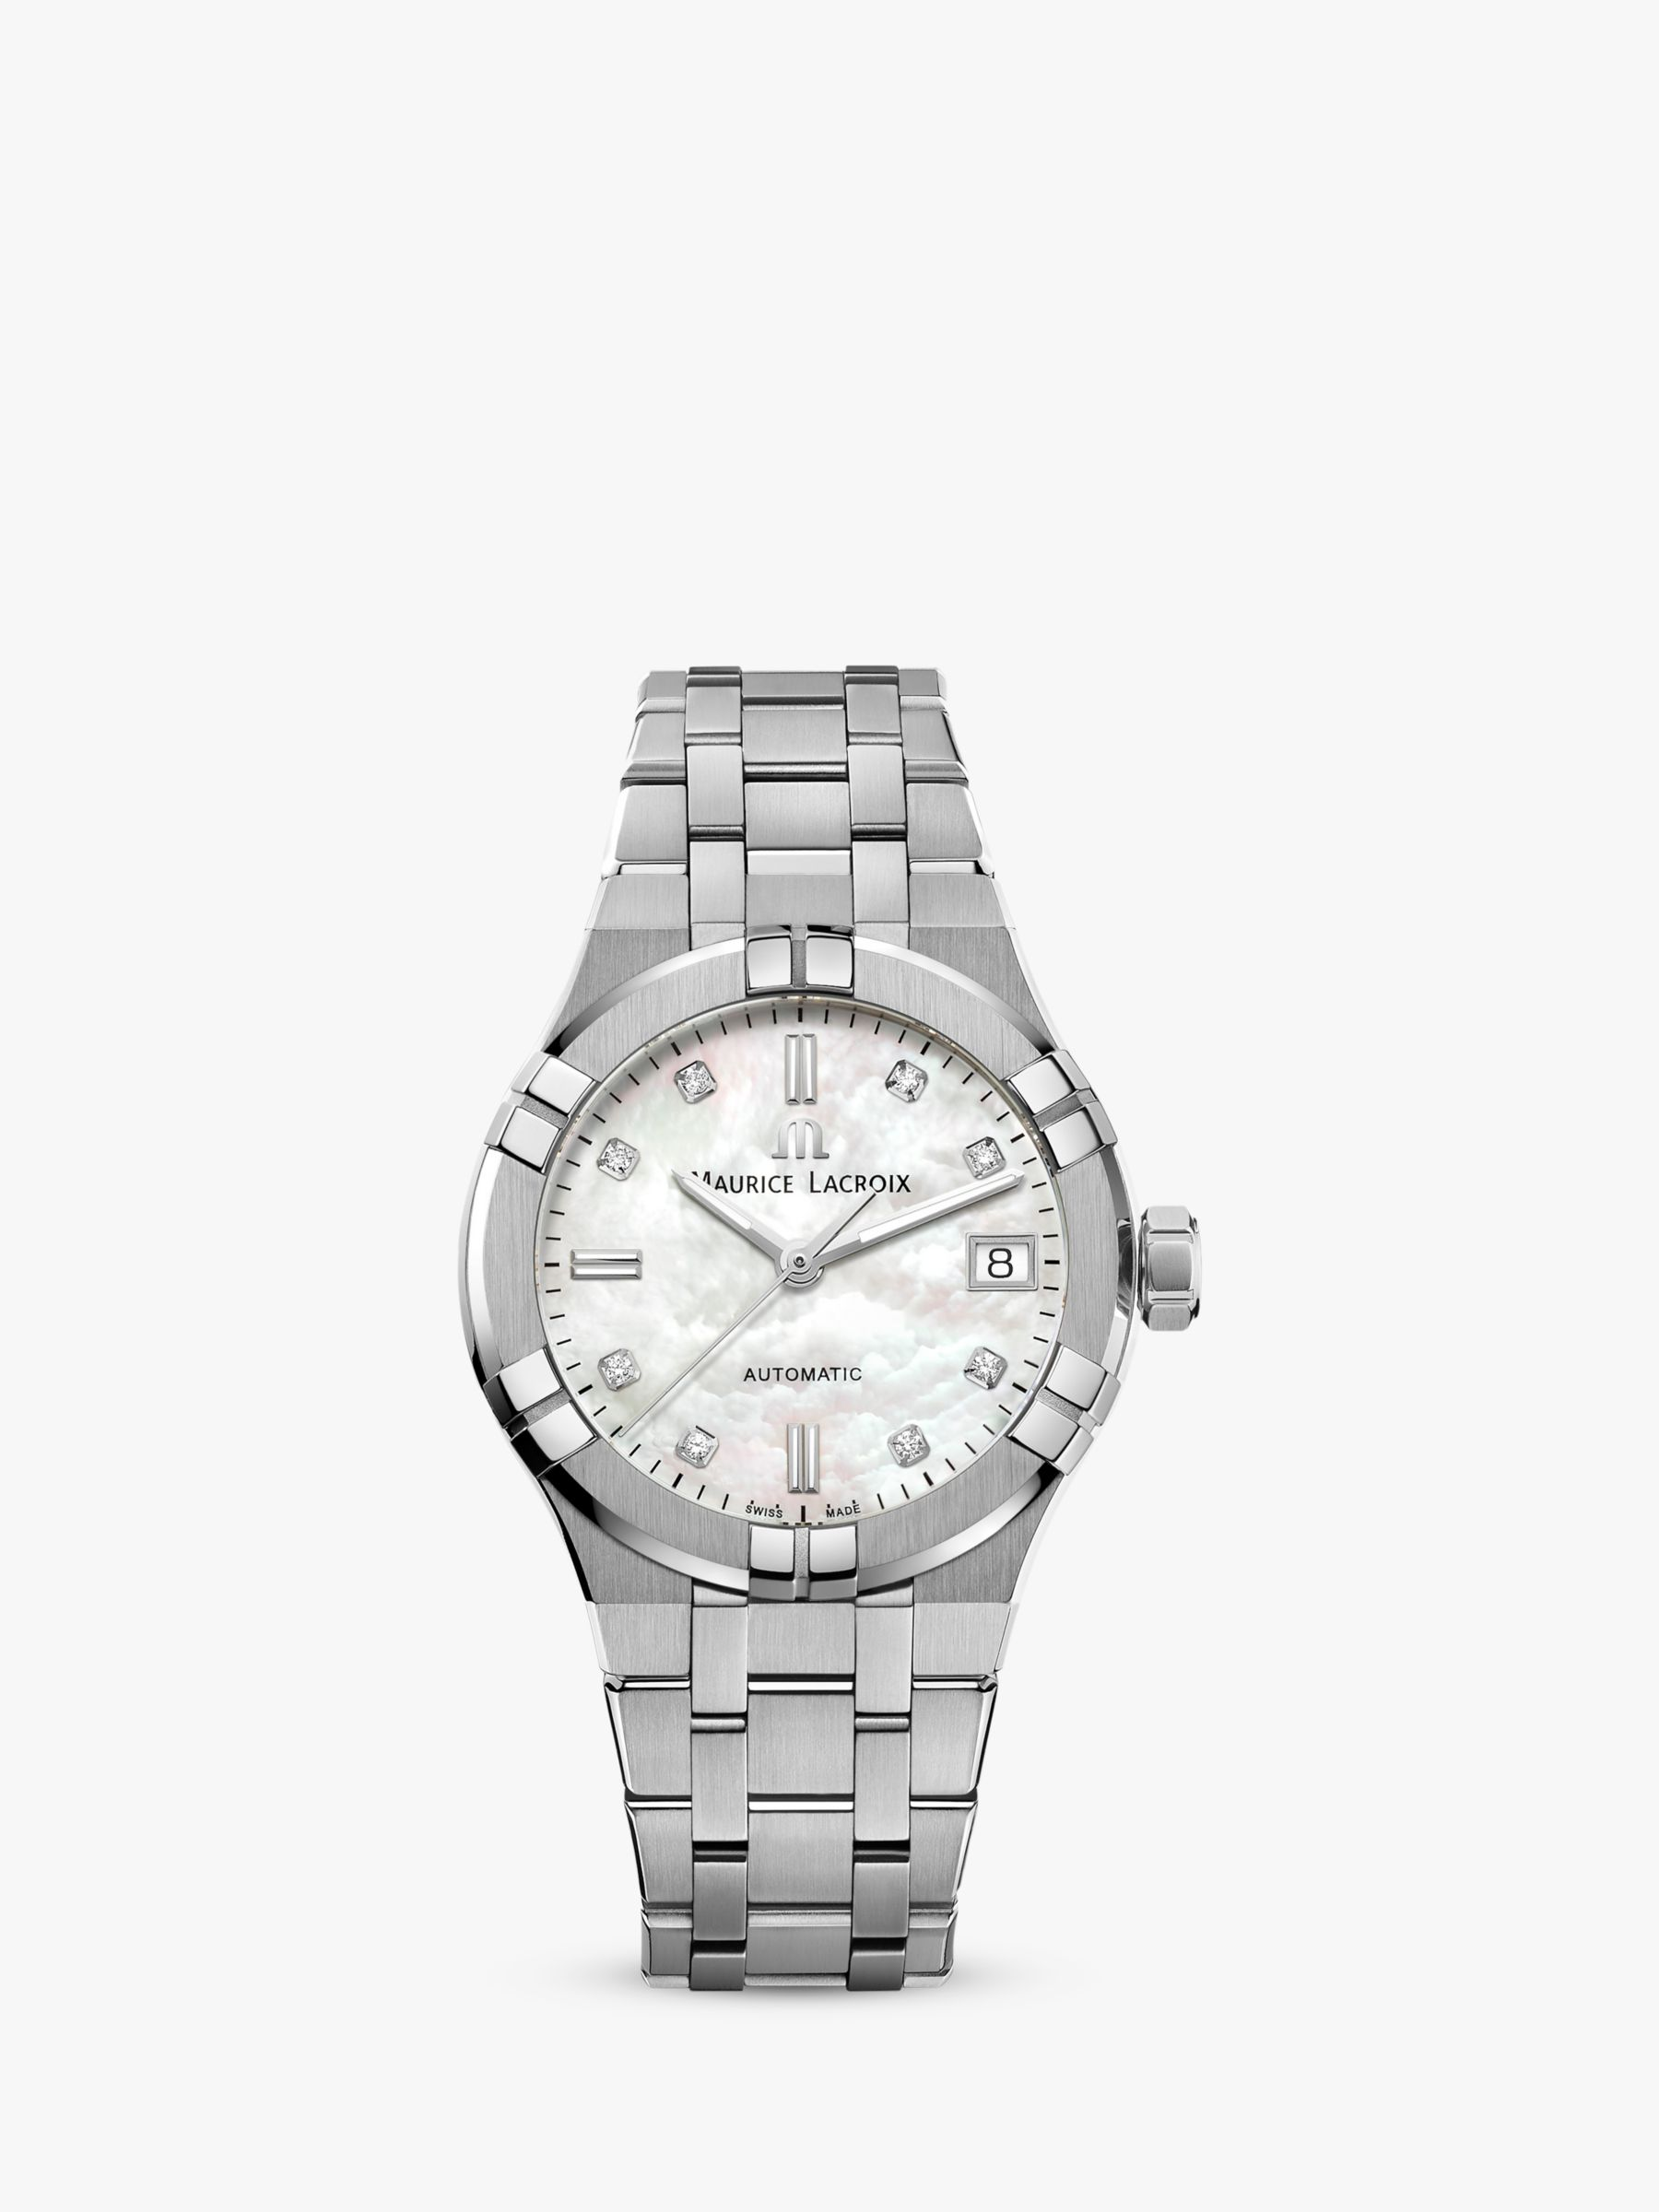 Maurice Lacroix Maurice Lacroix AI6006-SS002-170-1 Women's Aikon Automatic Diamond Date Bracelet Strap Watch, Silver/Mother of Pearl